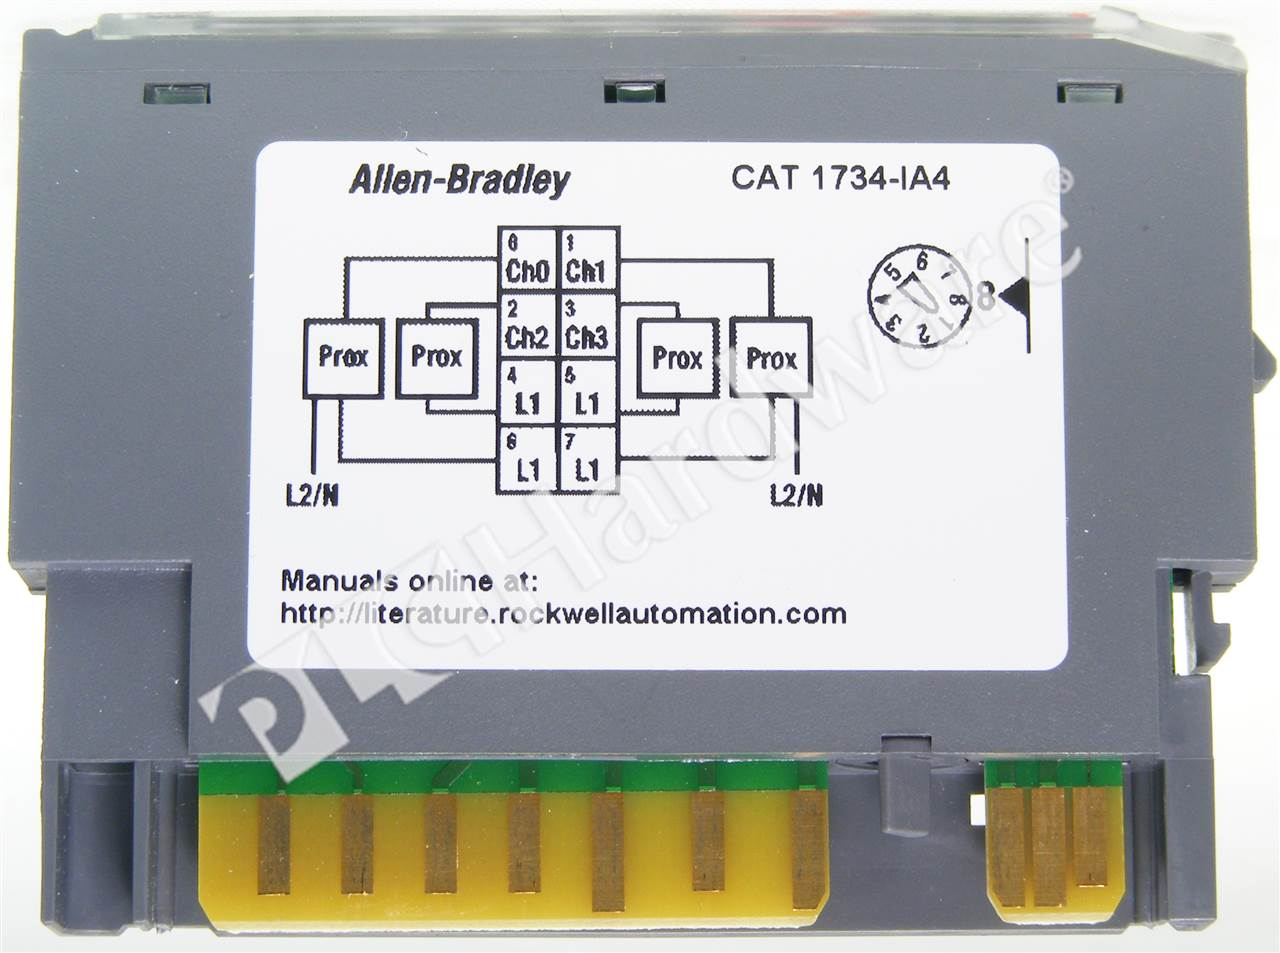 RA 1734 IA4 C UPP 2_b plc hardware allen bradley 1734 ia4 point i o 120v ac 4 channel 1734 fpd wiring diagram at crackthecode.co